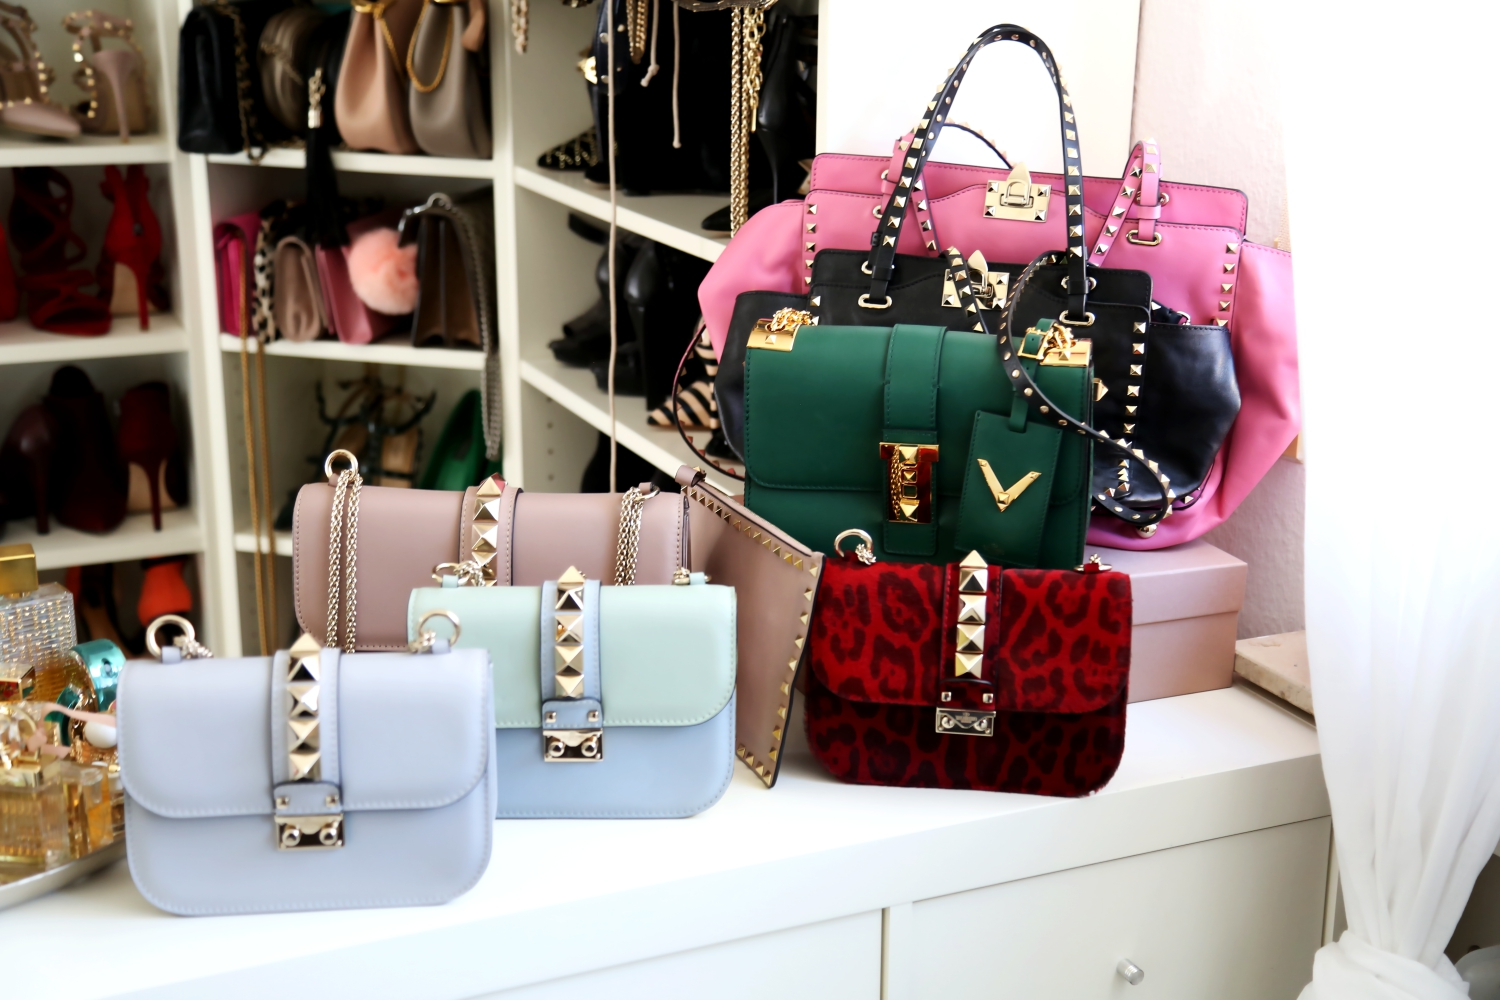 valentino-garavani-bag-collection-fashionhippieloves